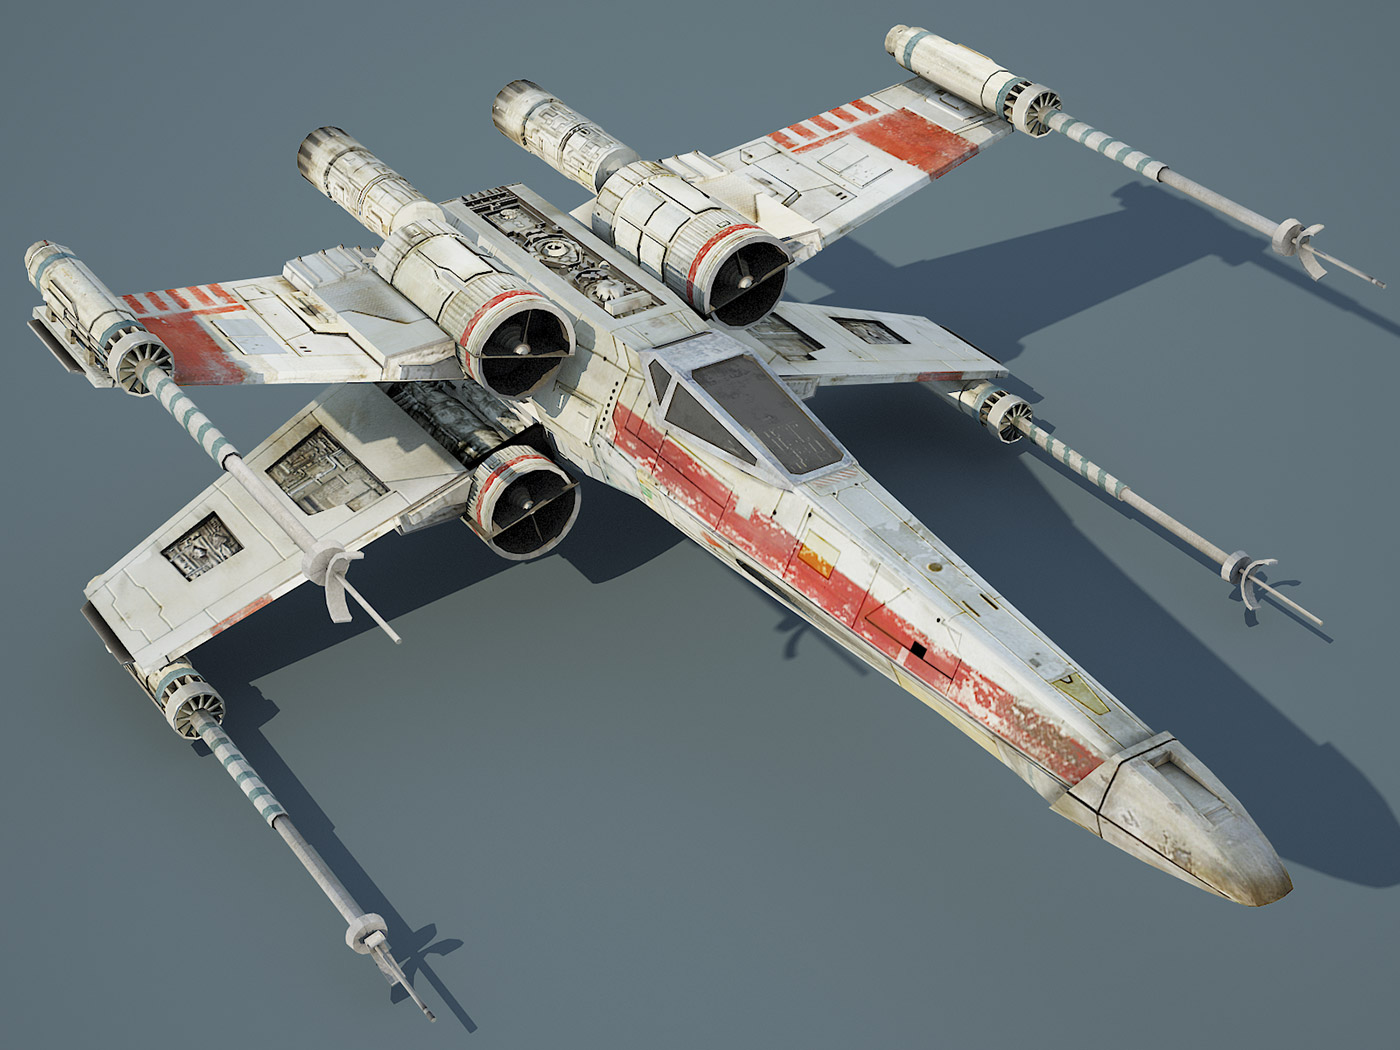 Game Ready Star Wars X-Wing Starfighter 3D model